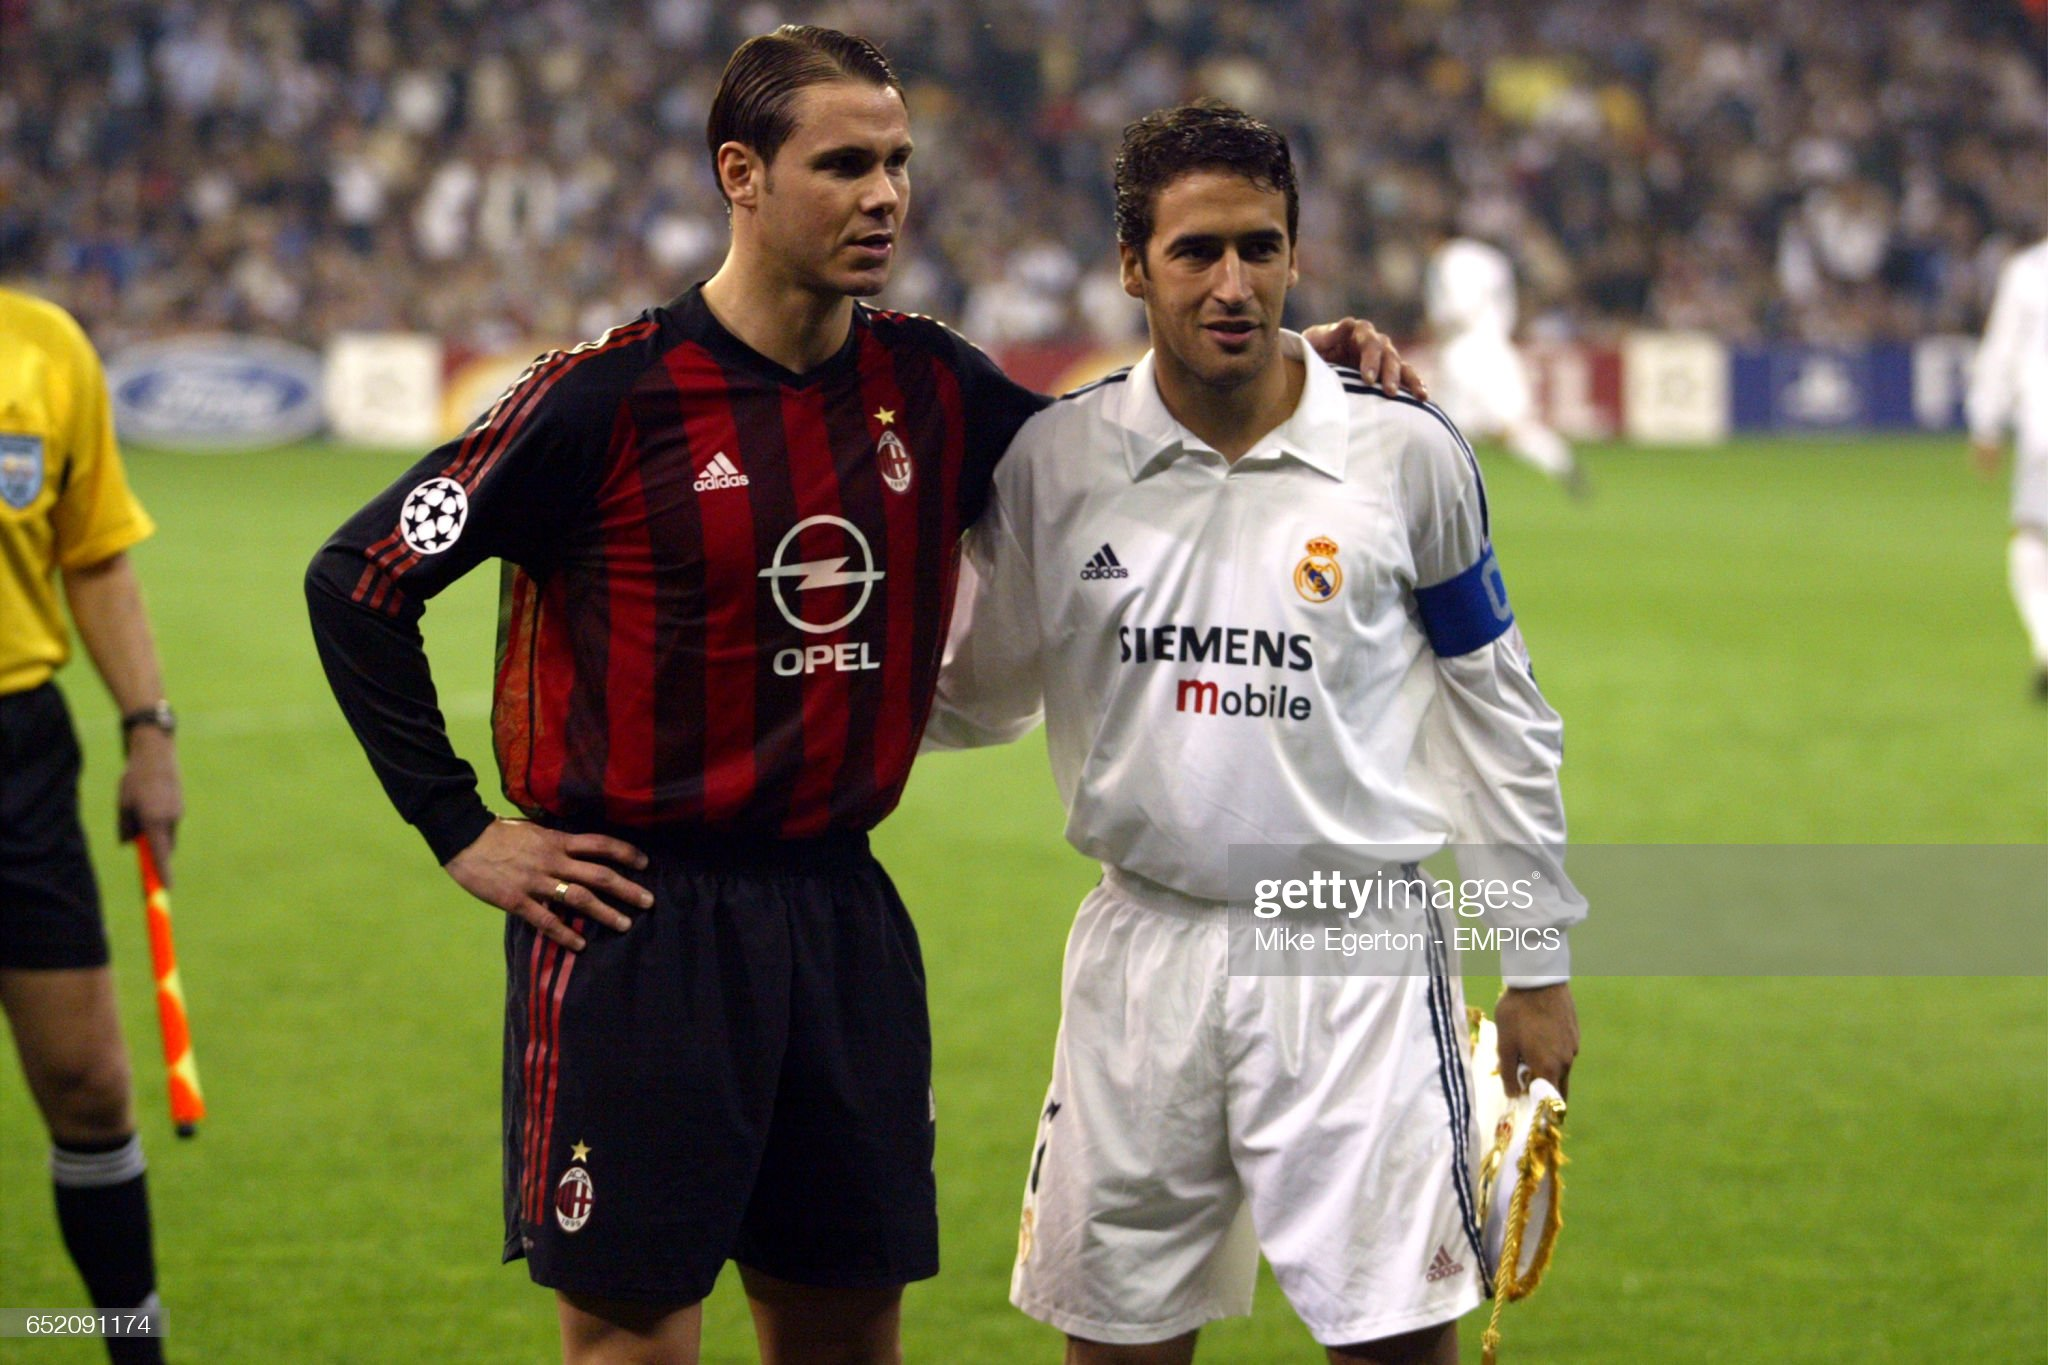 ¿Cuánto mide Fernando Redondo? - Altura - Real height Real-madrids-raul-and-ac-milans-fernando-redondo-before-kick-off-picture-id652091174?s=2048x2048